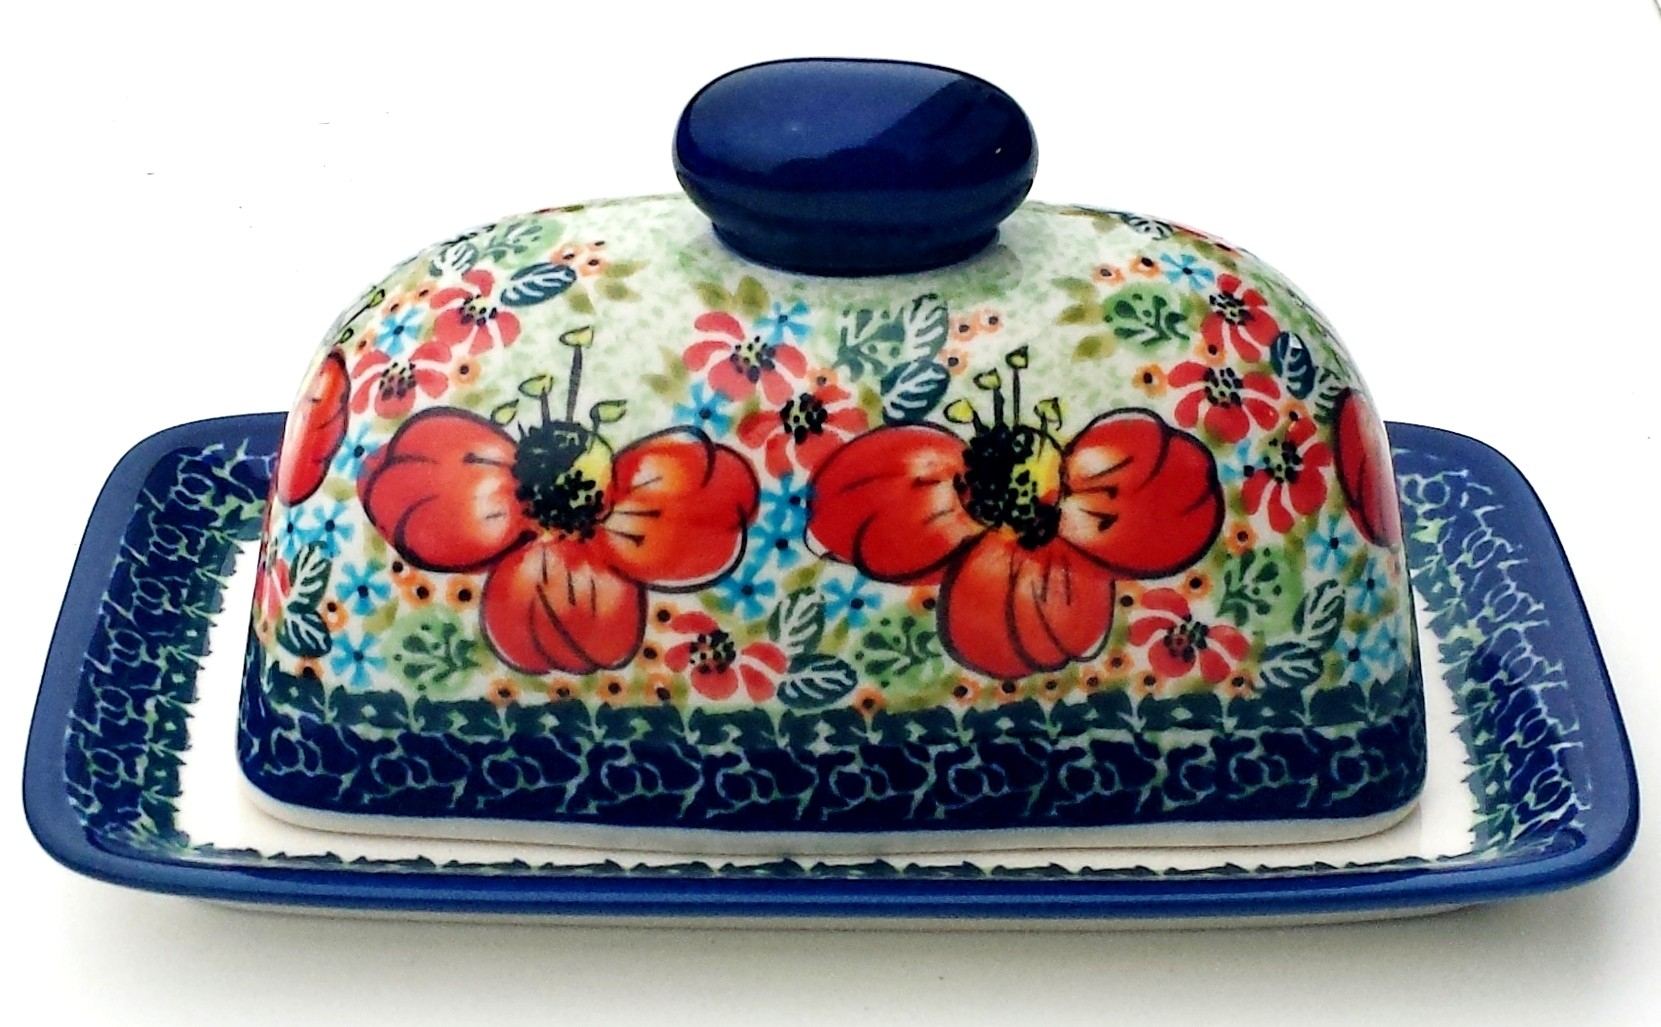 Pottery Avenue 2-piece Covered Stoneware Butter Dish - 1377-296AR Champagne